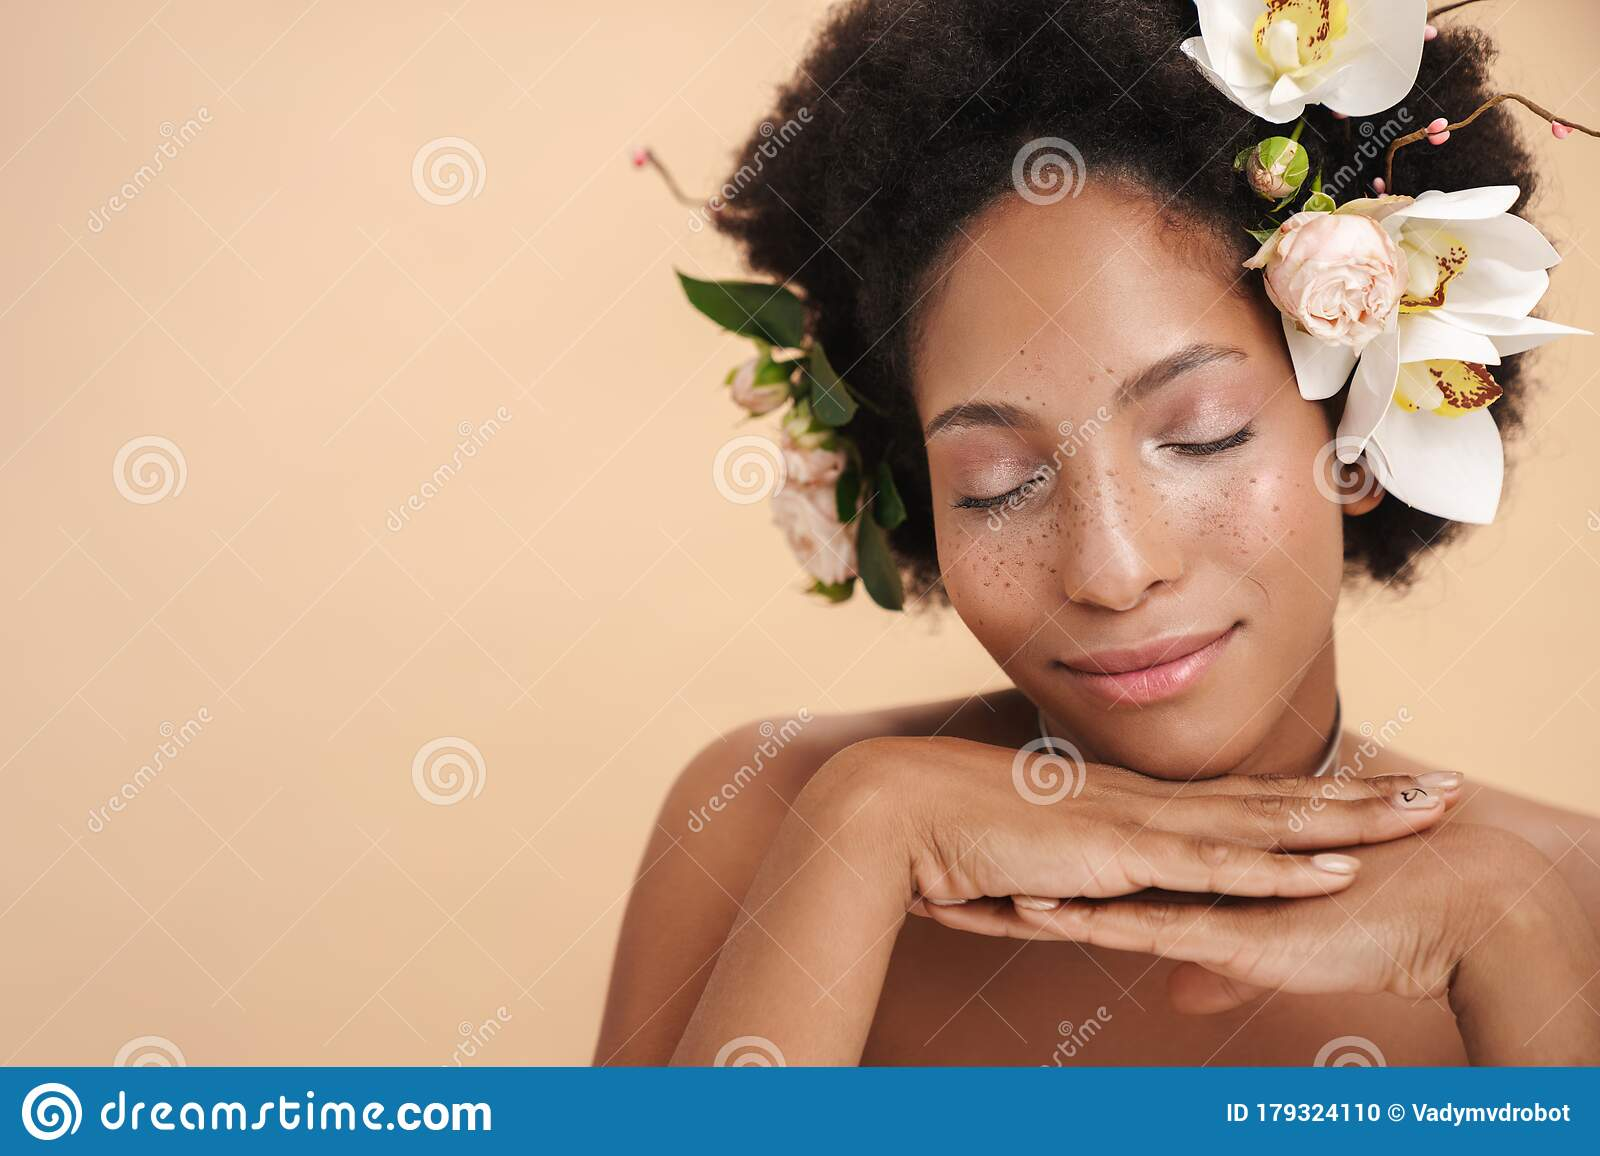 Portrait Of Half-naked African American Woman With Flowers